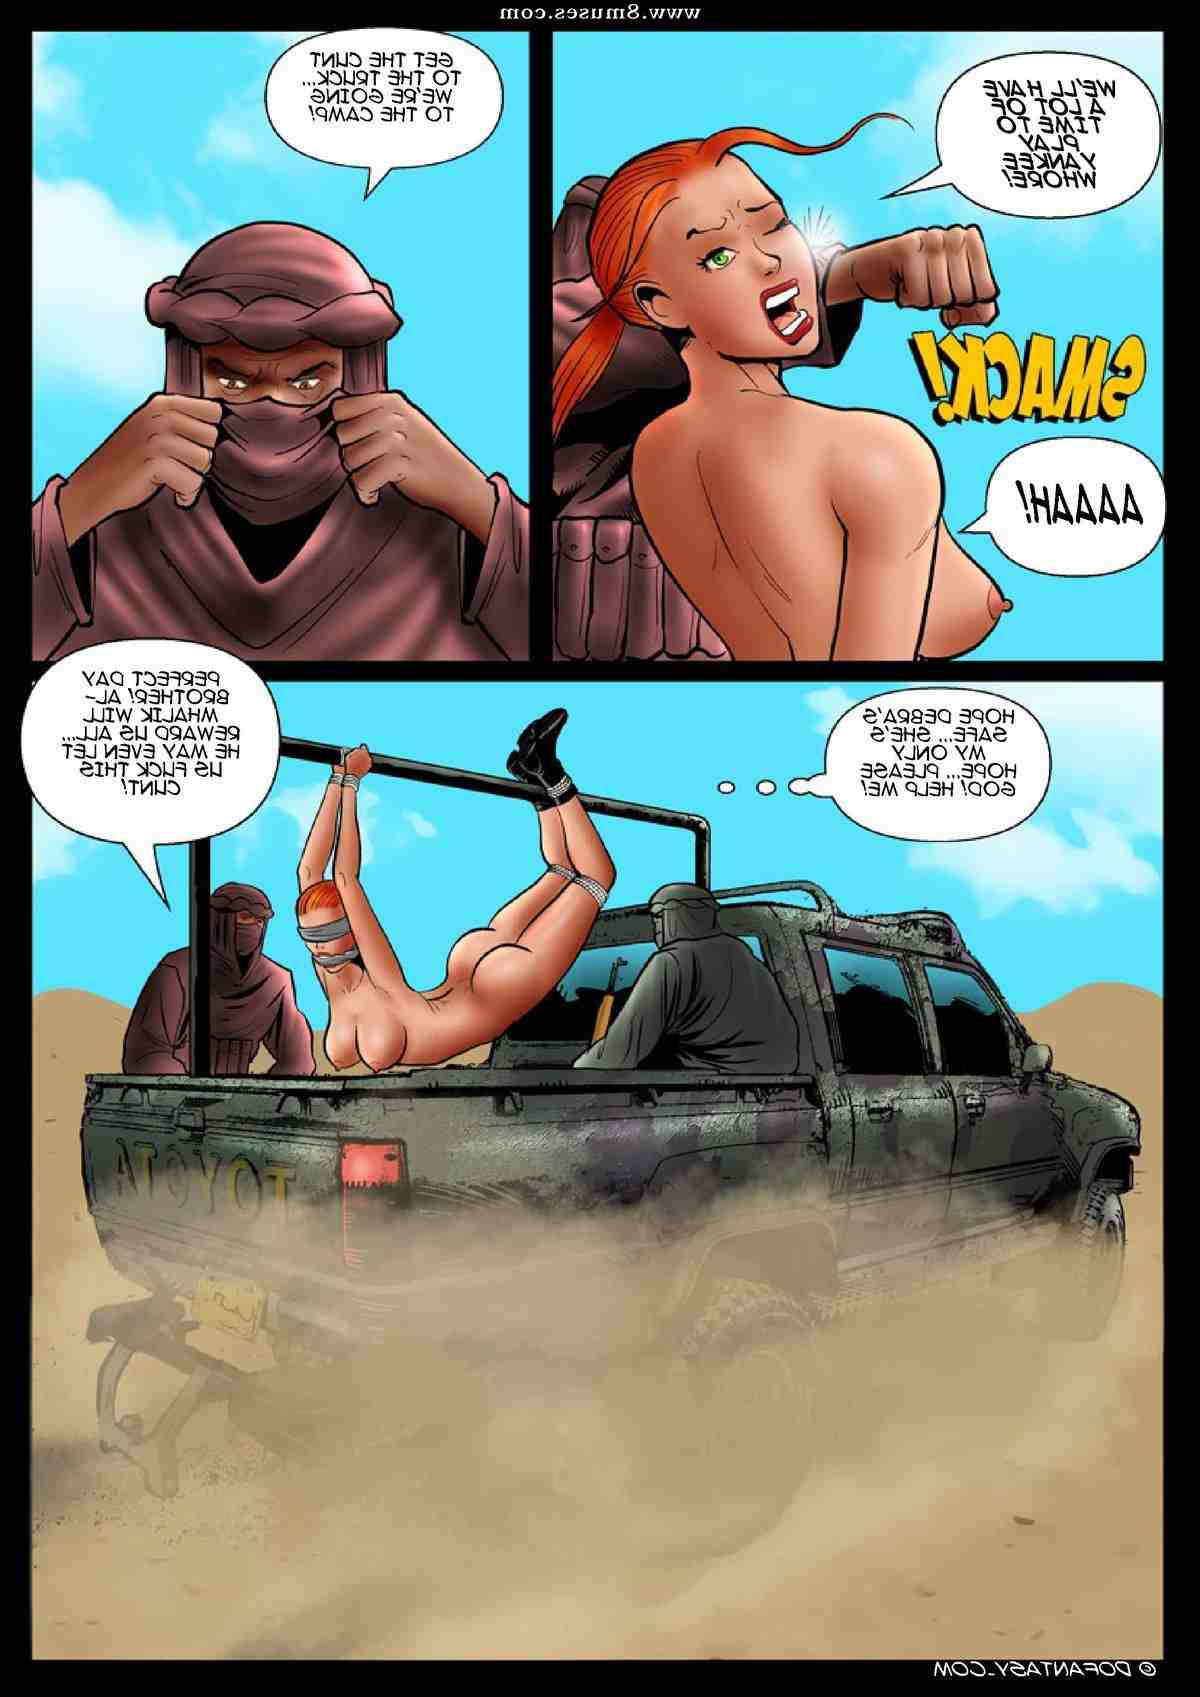 Fansadox-Comics/301-400/Fansadox-369-The-Pows Fansadox_369_-_The_Pows__8muses_-_Sex_and_Porn_Comics_11.jpg